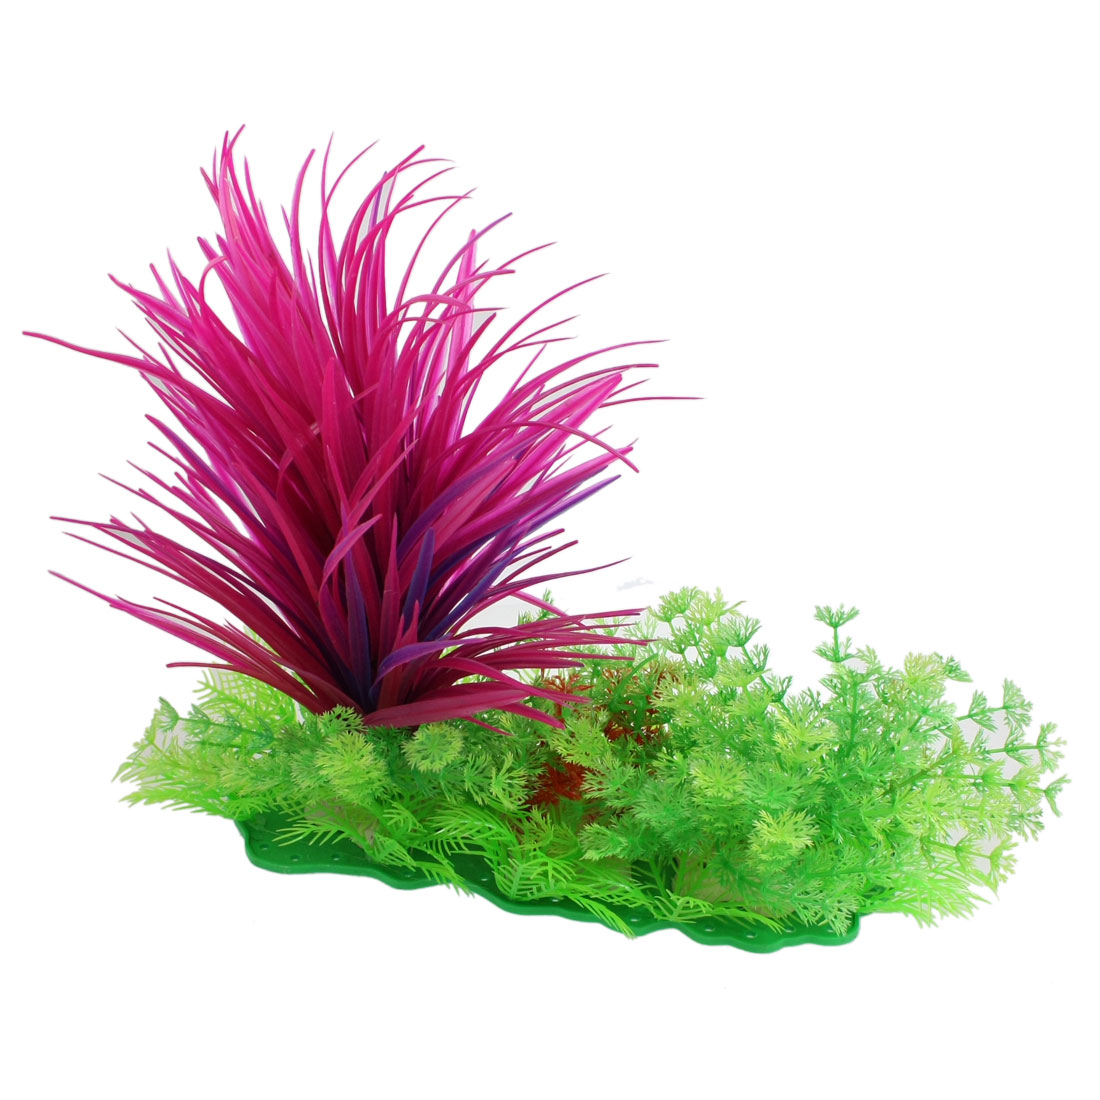 "Aquarium Plastic Fuchsia Long Plants Green Snowflake Grass Decor 11.4"" High"